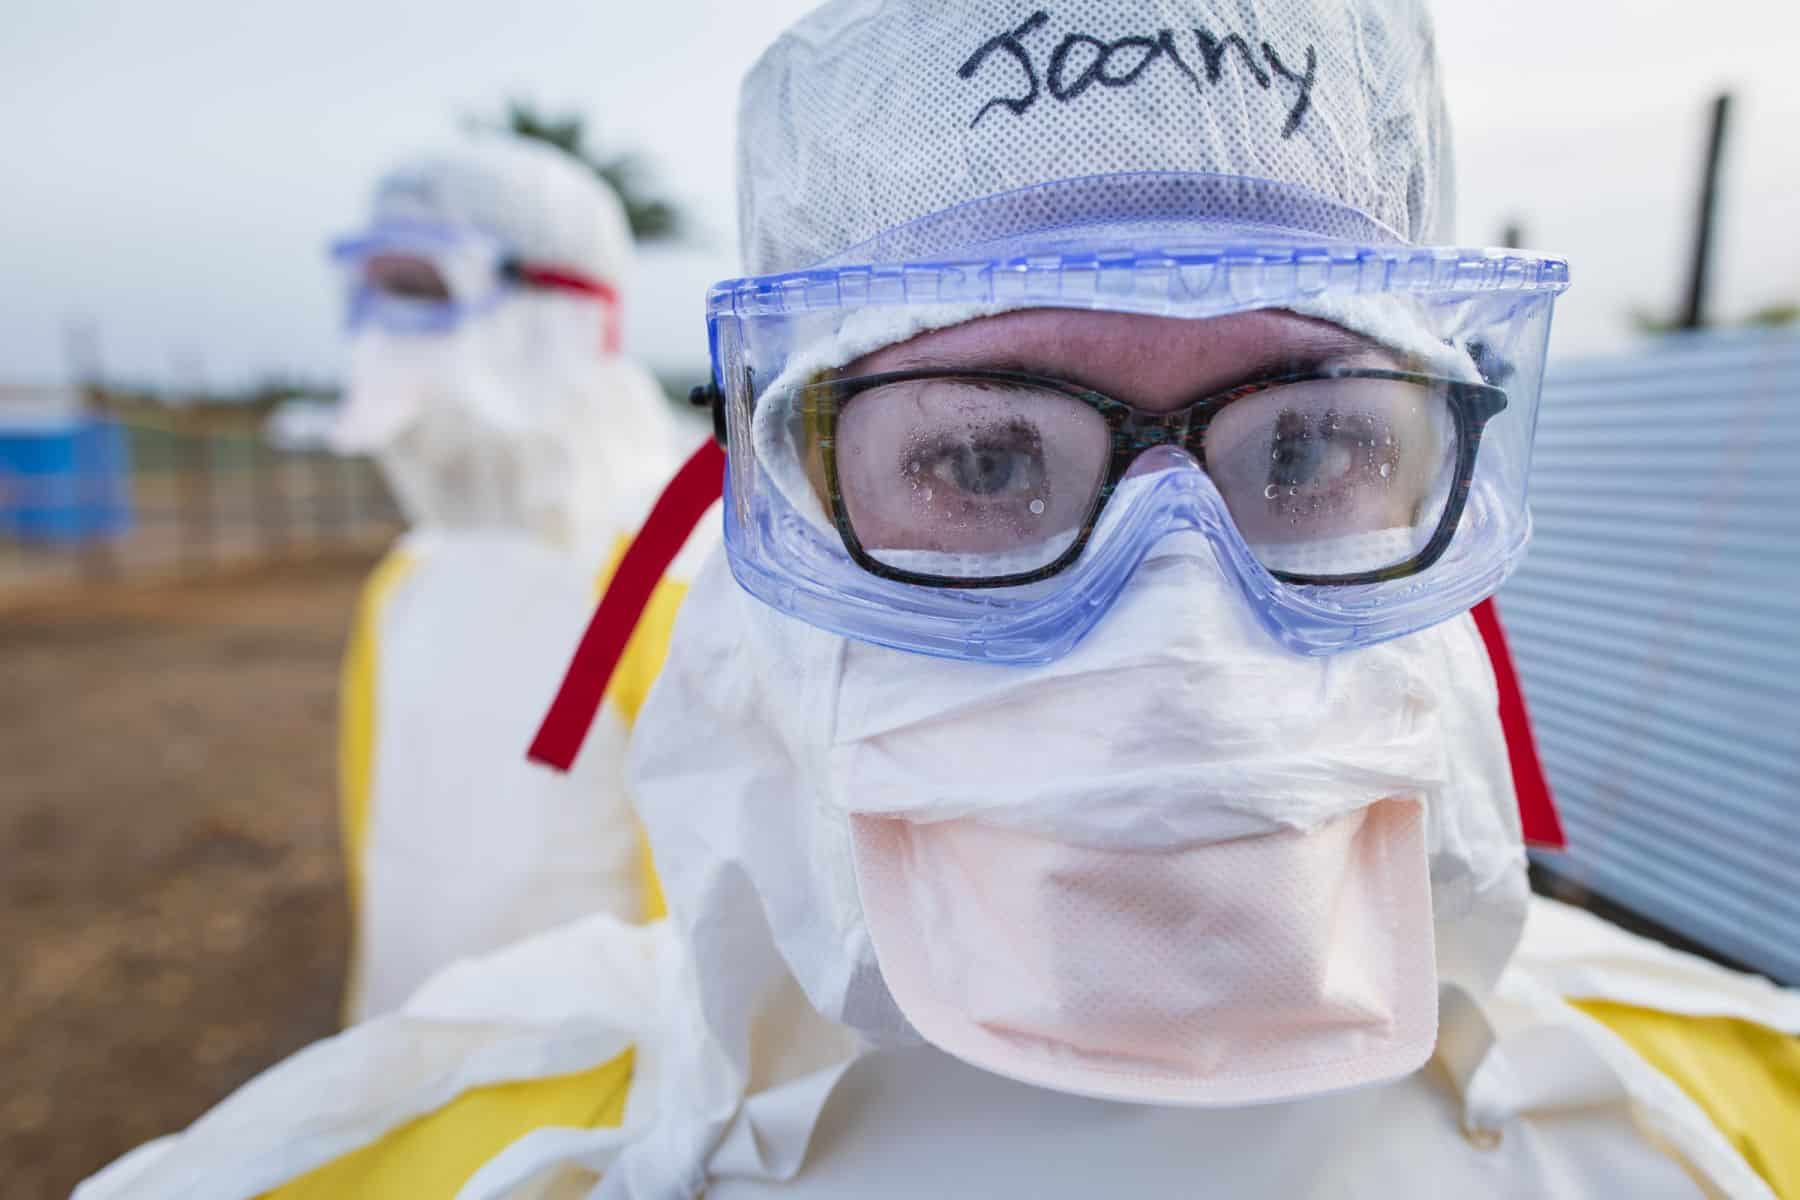 Canadian nurse Joany McDougall is serving with Samaritan's Purse in the fight against Ebola.